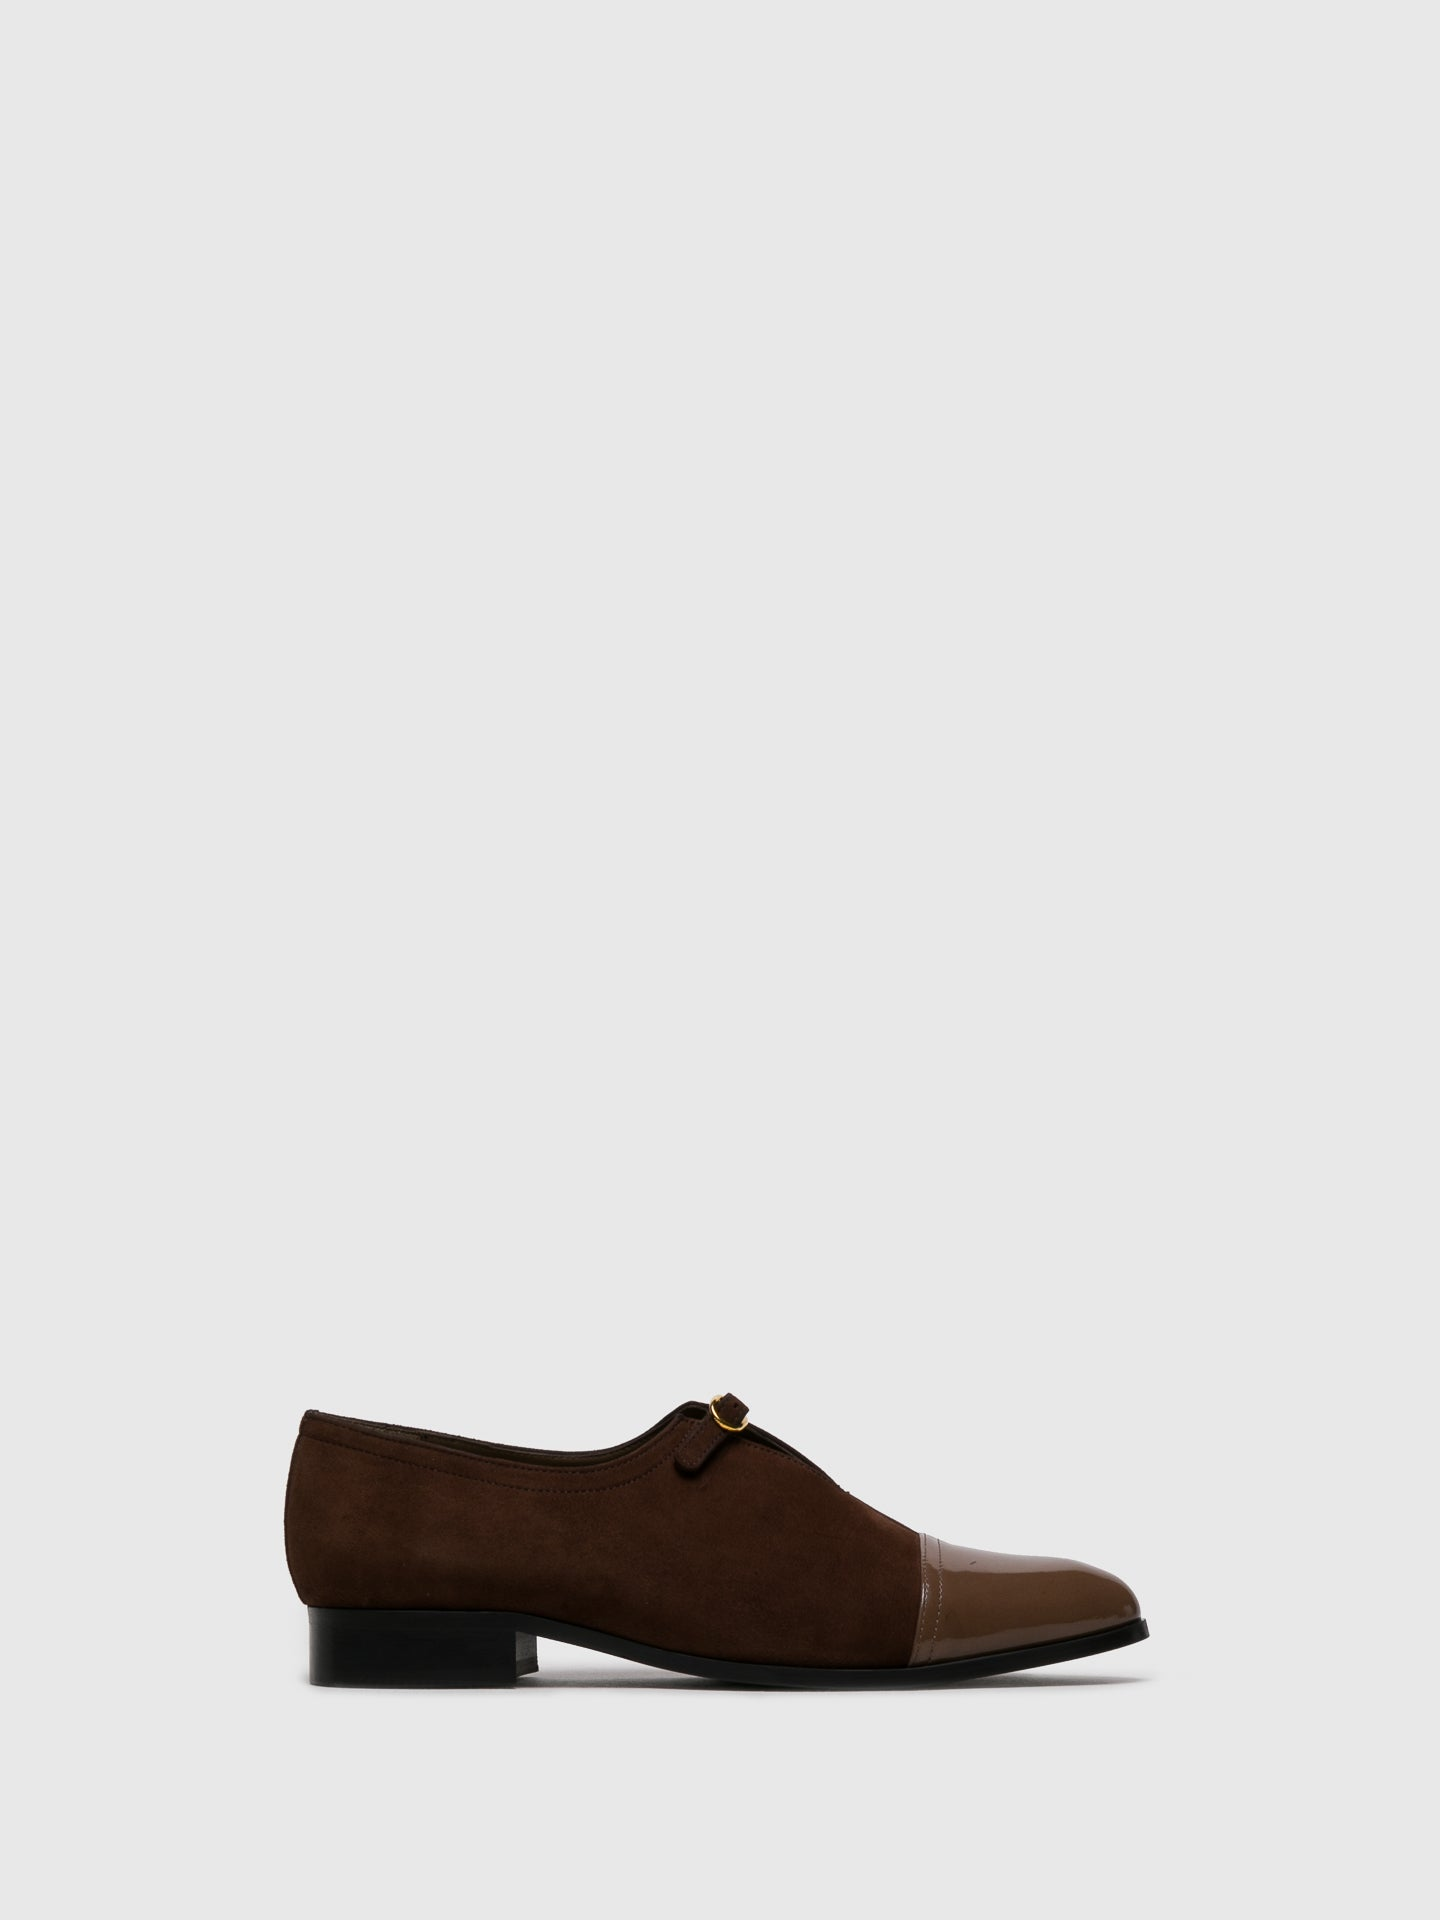 JJ Heitor Brown Suede Pointed Toe Shoes